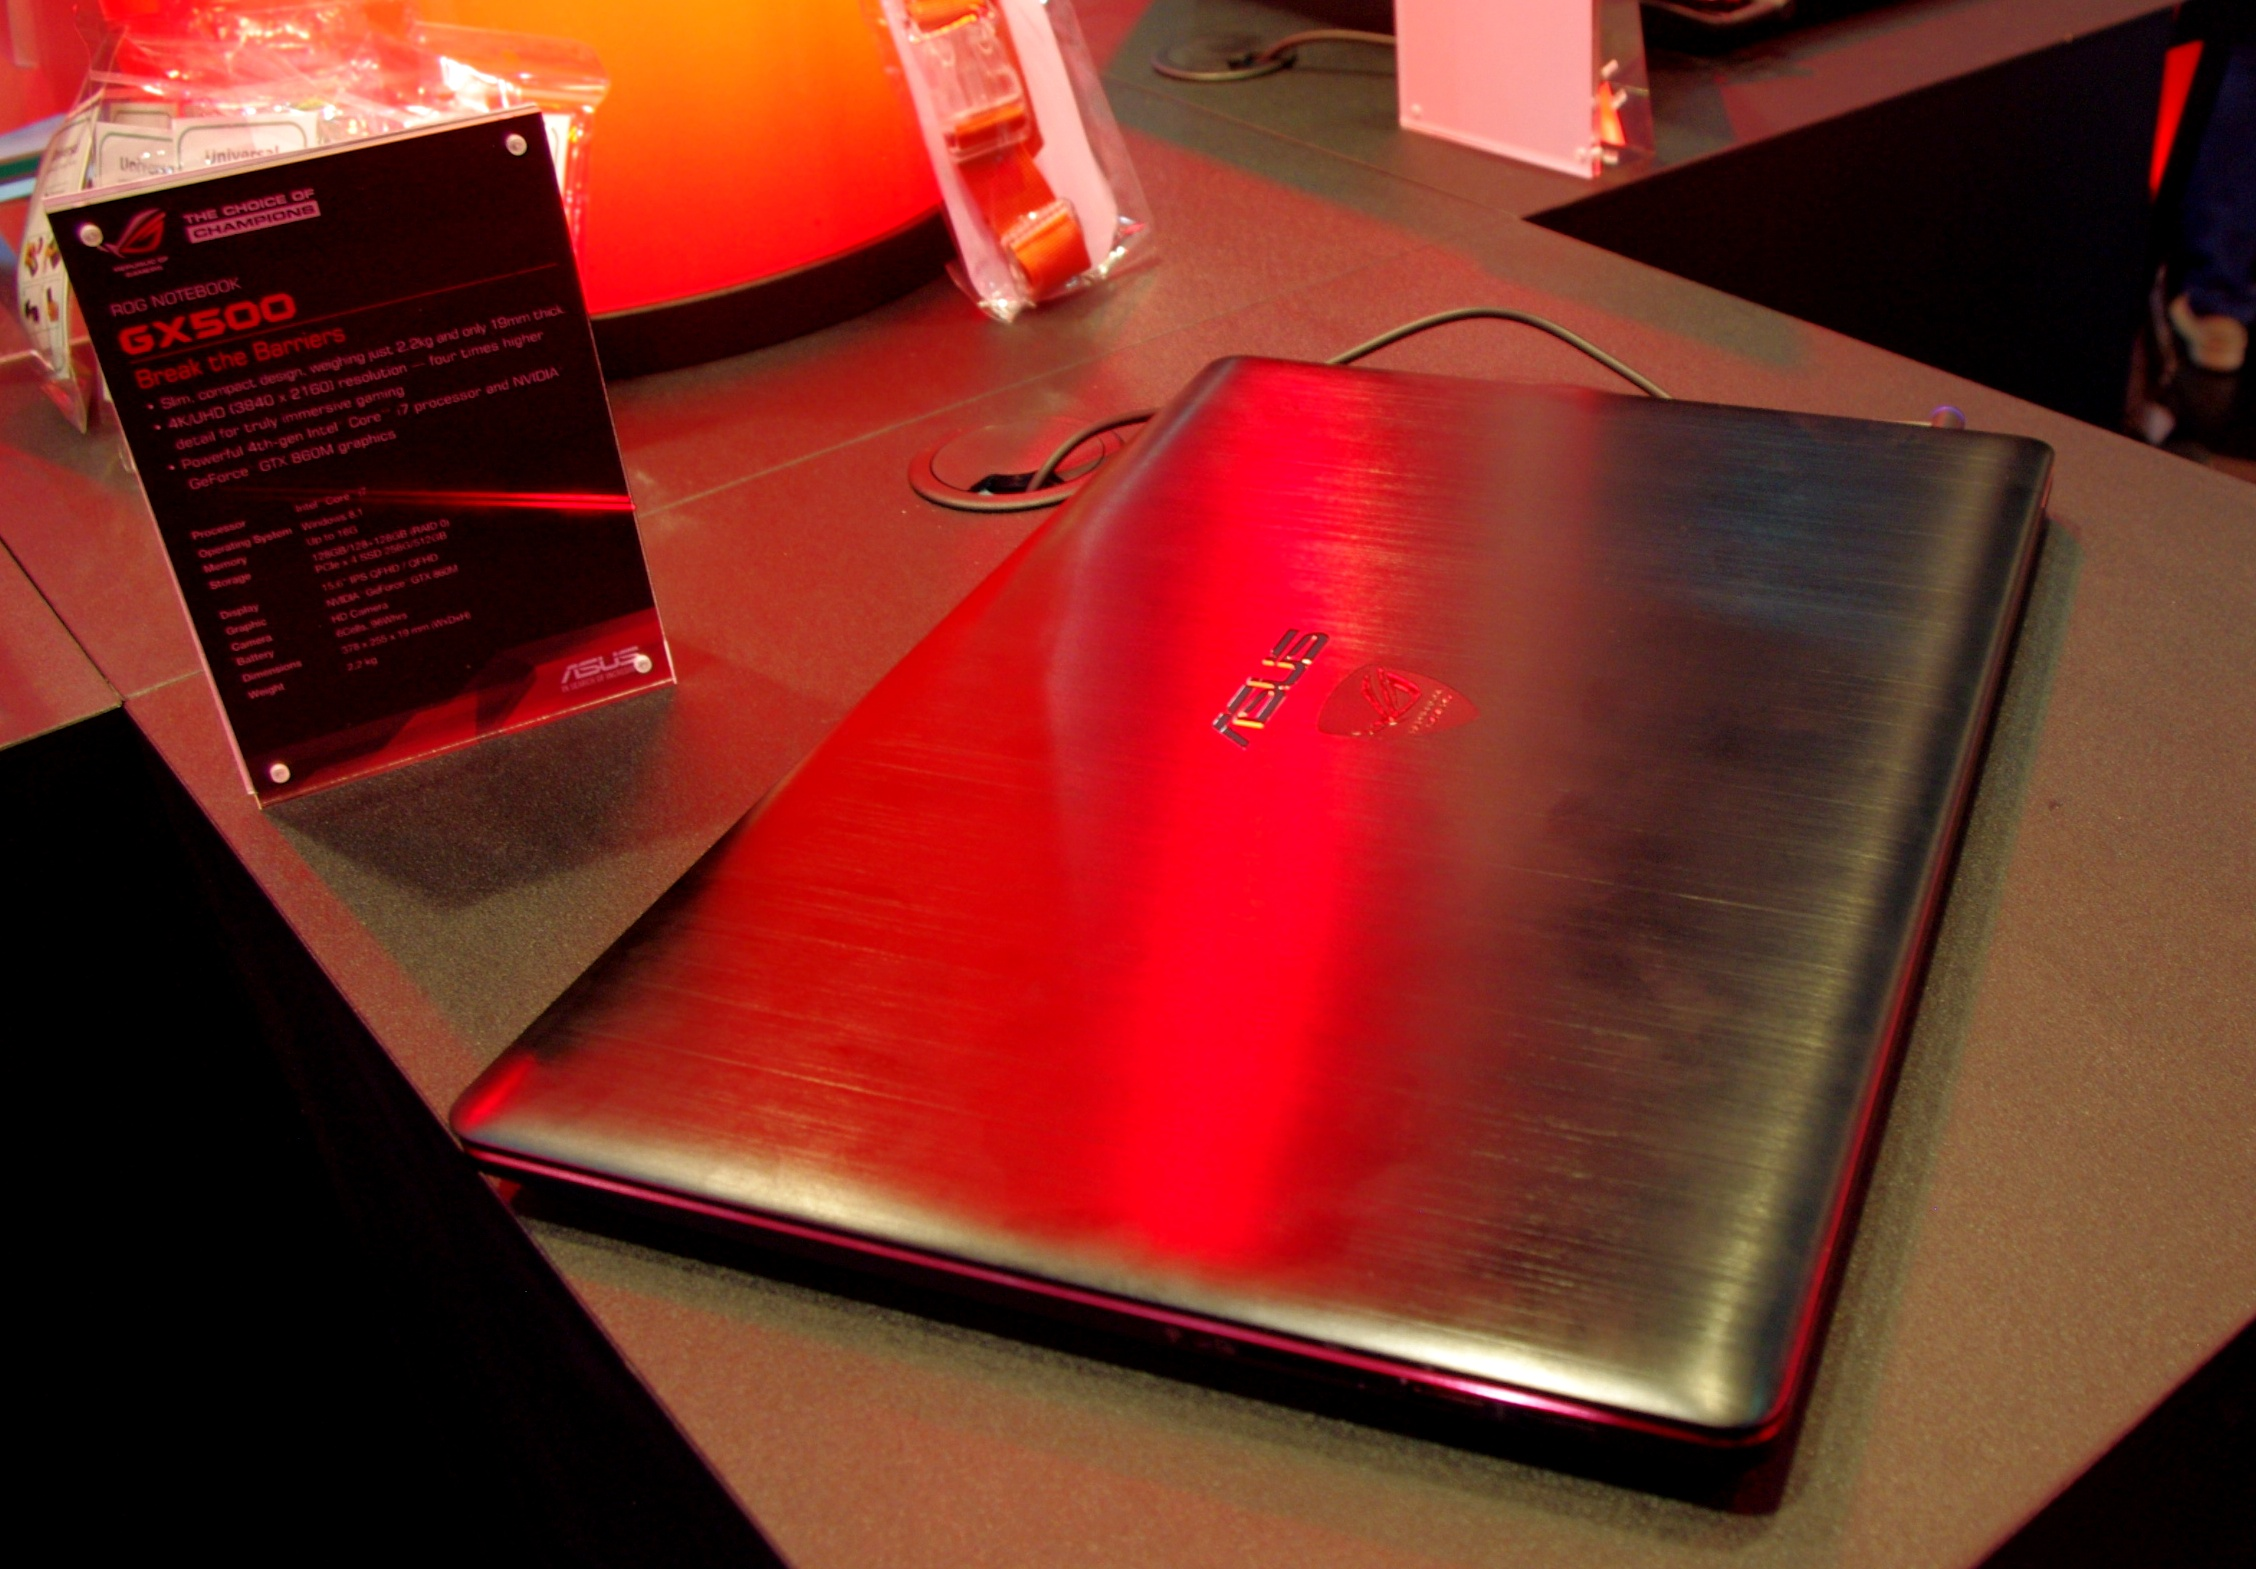 rog gx500 4k gaming laptop computex 2014 the asus booth tour. Black Bedroom Furniture Sets. Home Design Ideas